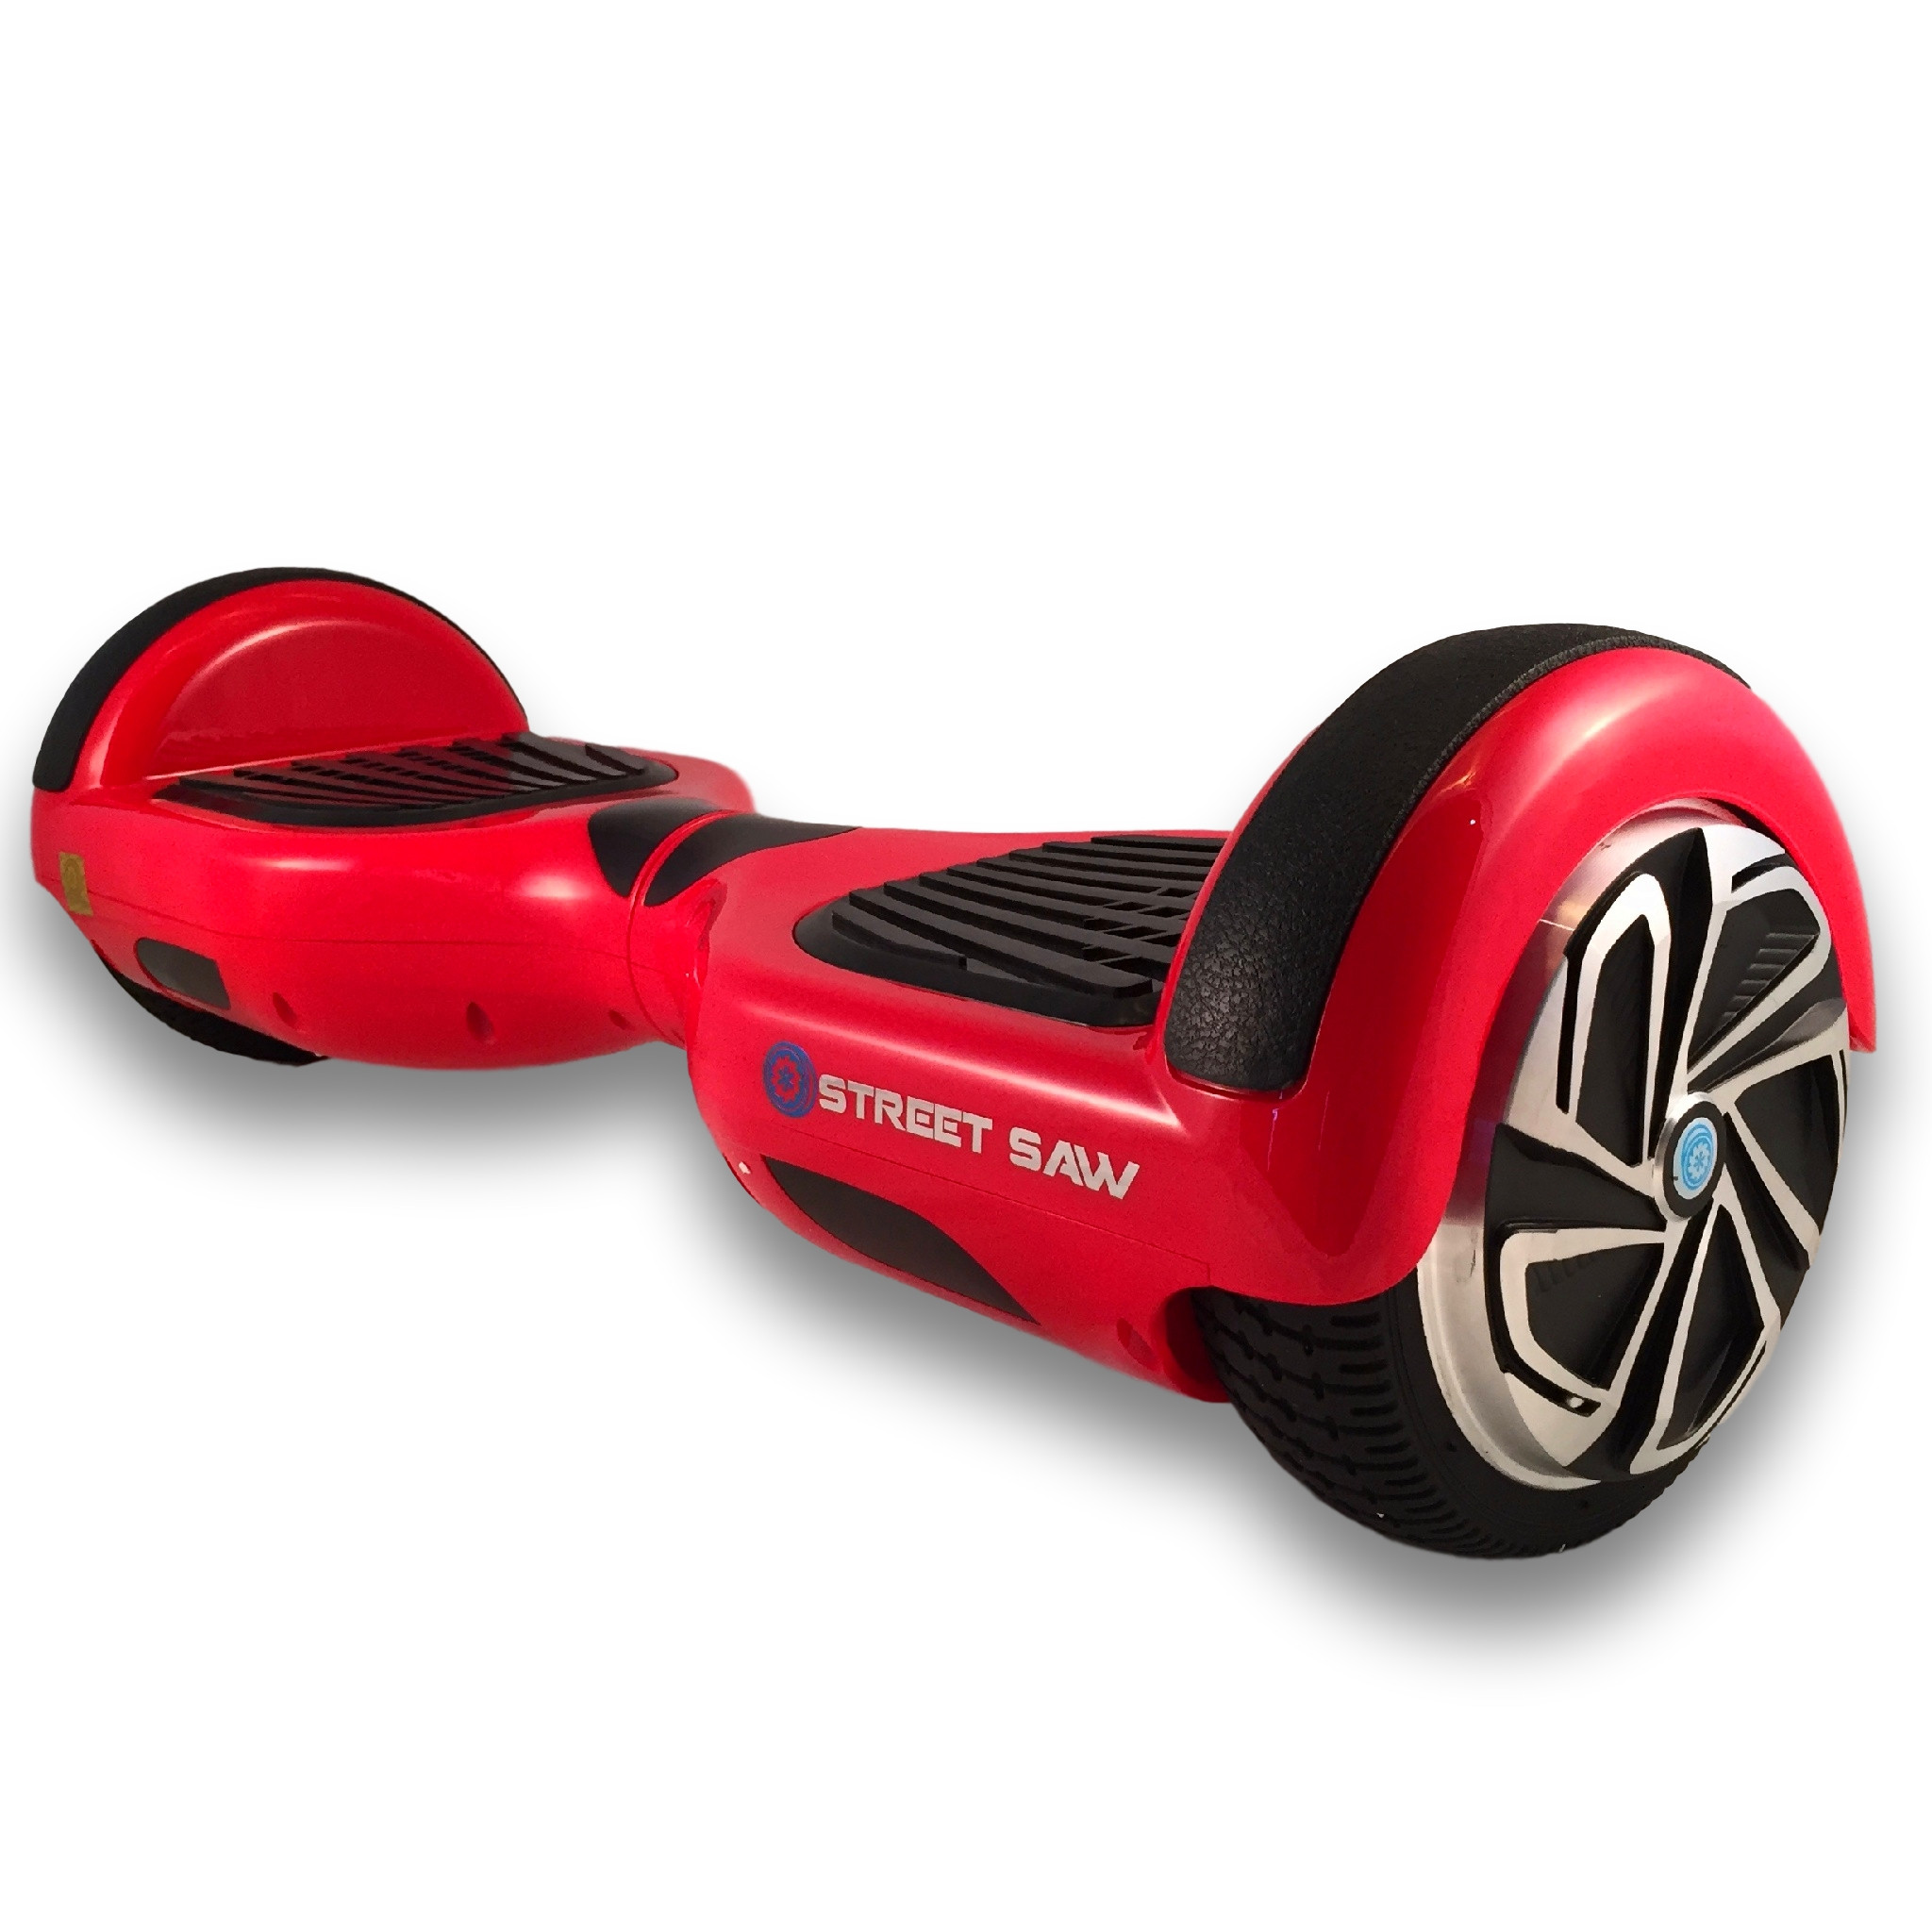 Check For Recall >> Hoverboard | www.imgkid.com - The Image Kid Has It!